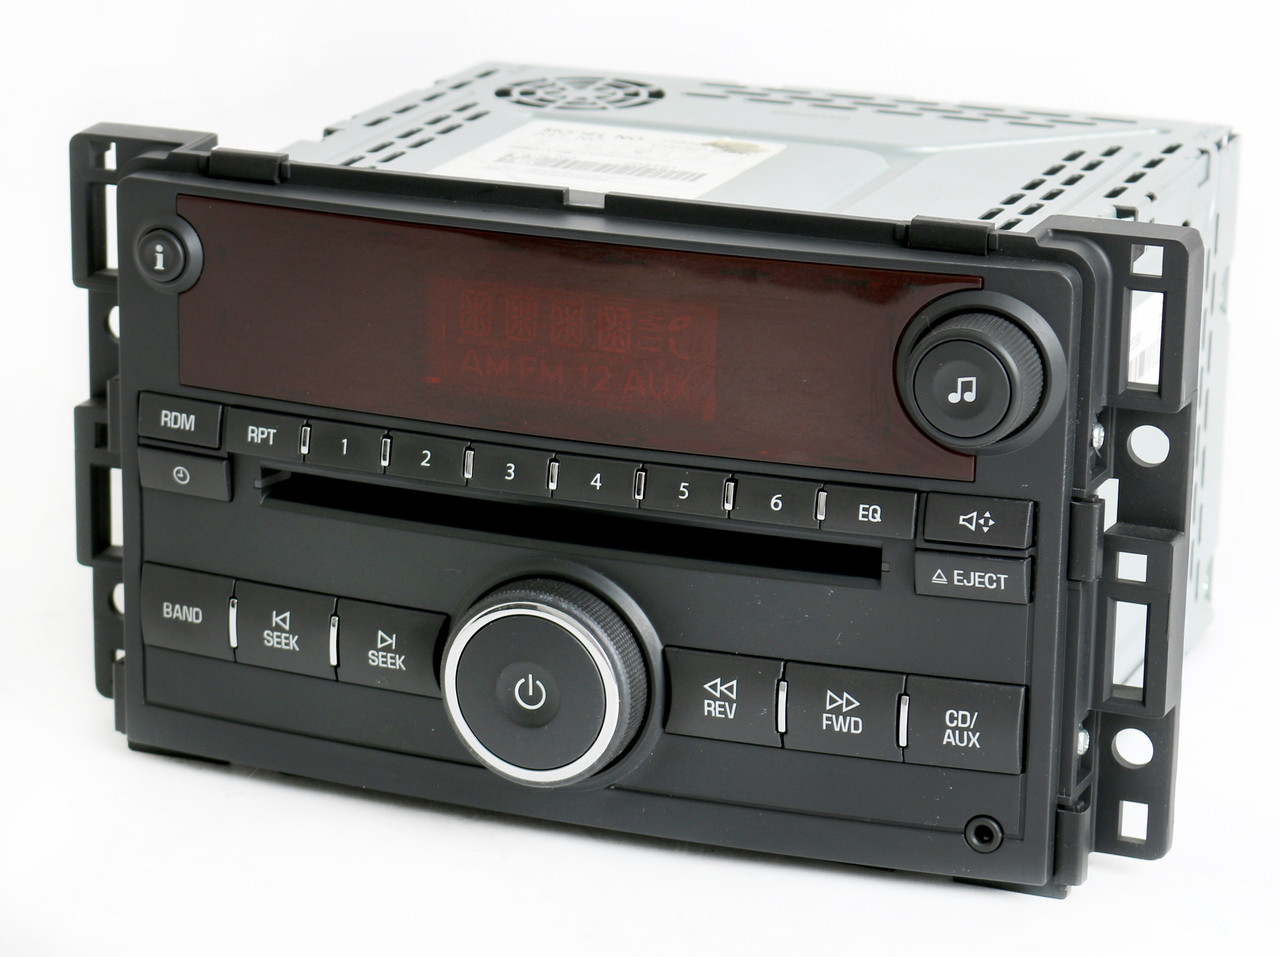 saturn ion vue 2006 2007 radio am fm cd player w auxiliary. Black Bedroom Furniture Sets. Home Design Ideas